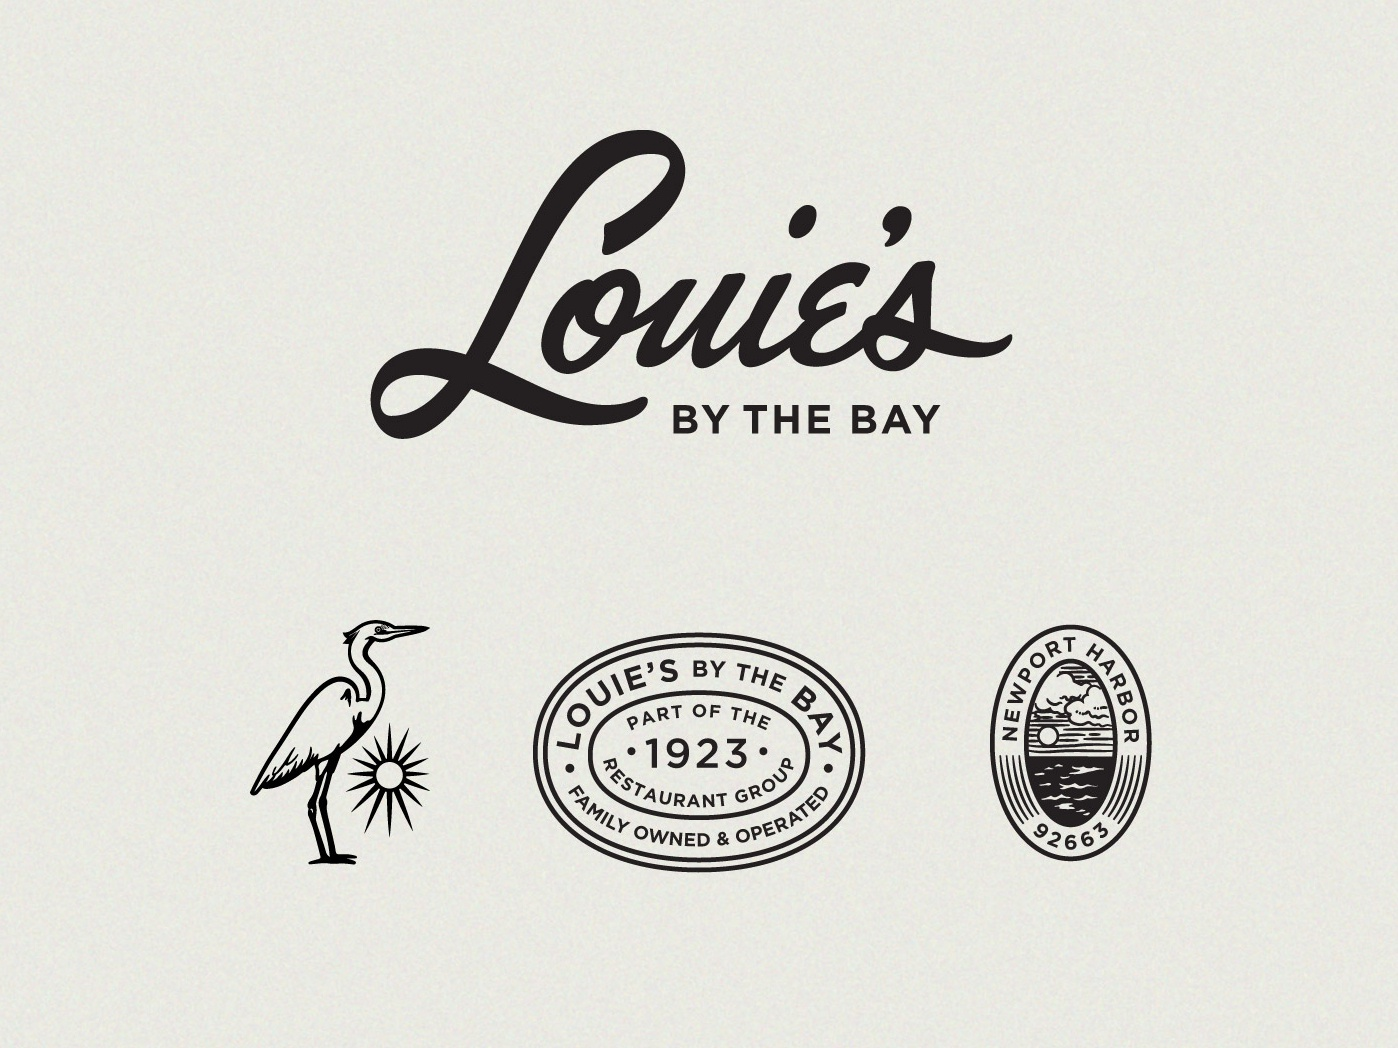 Louies By The Bay Restaurant Branding seal ocean sun stork lettering signature handwriting script retro california newport beach harbor bay restaurant